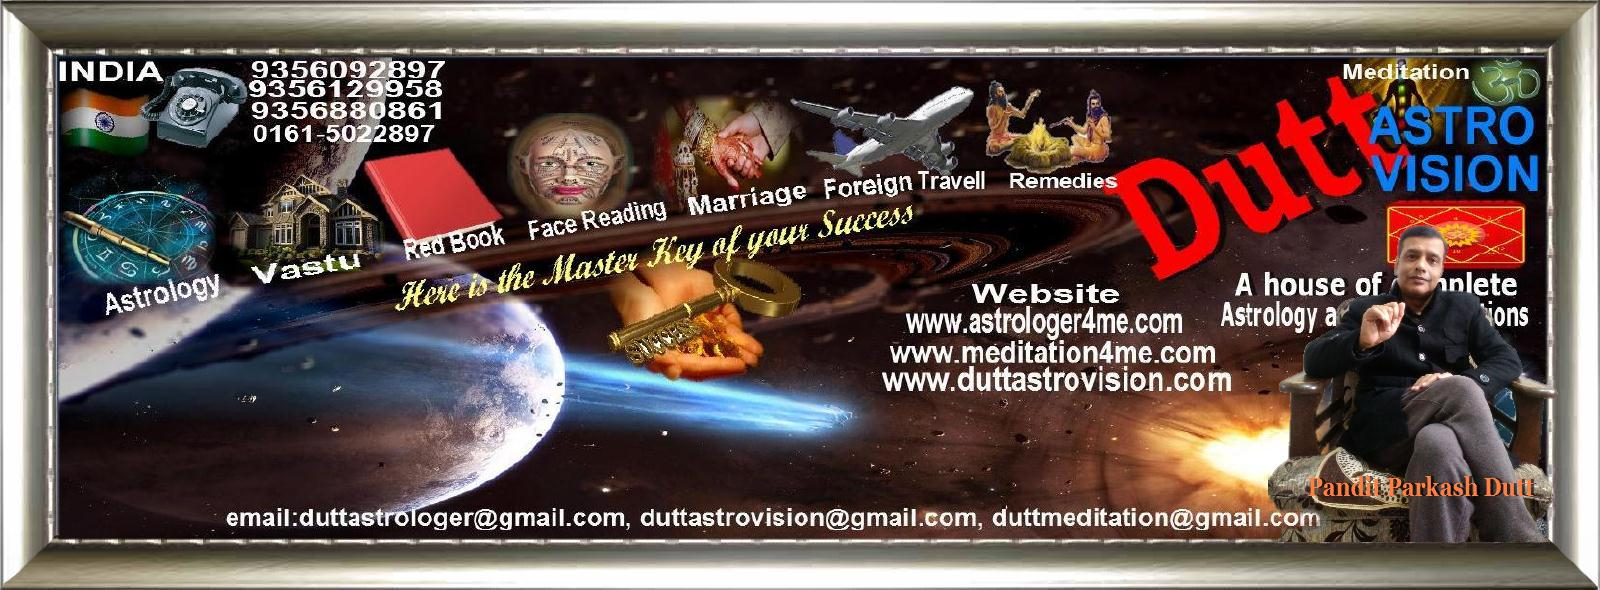 Astrologer Parkash Dutt our services